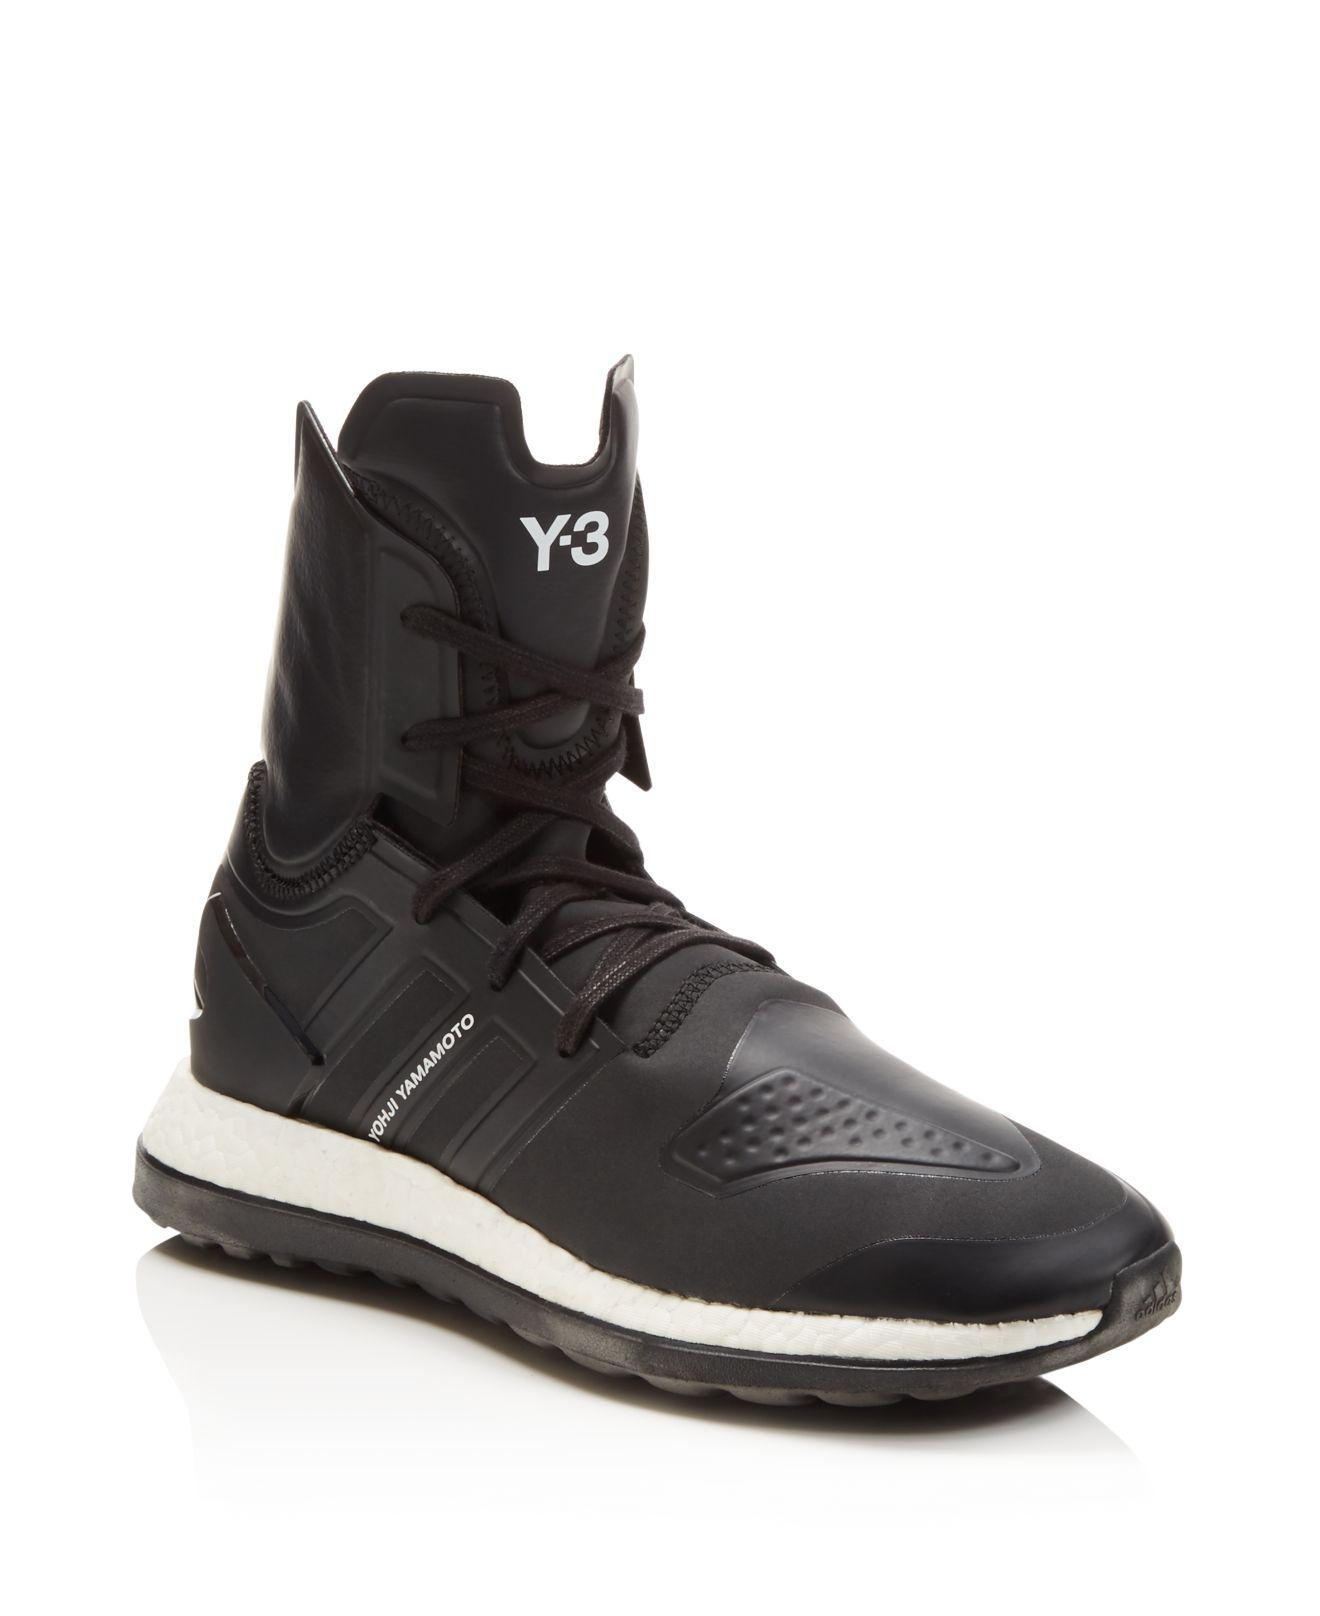 4c2aade860a4 Lyst - Y-3 Pure Boost Zg High Top Sneakers in Black for Men